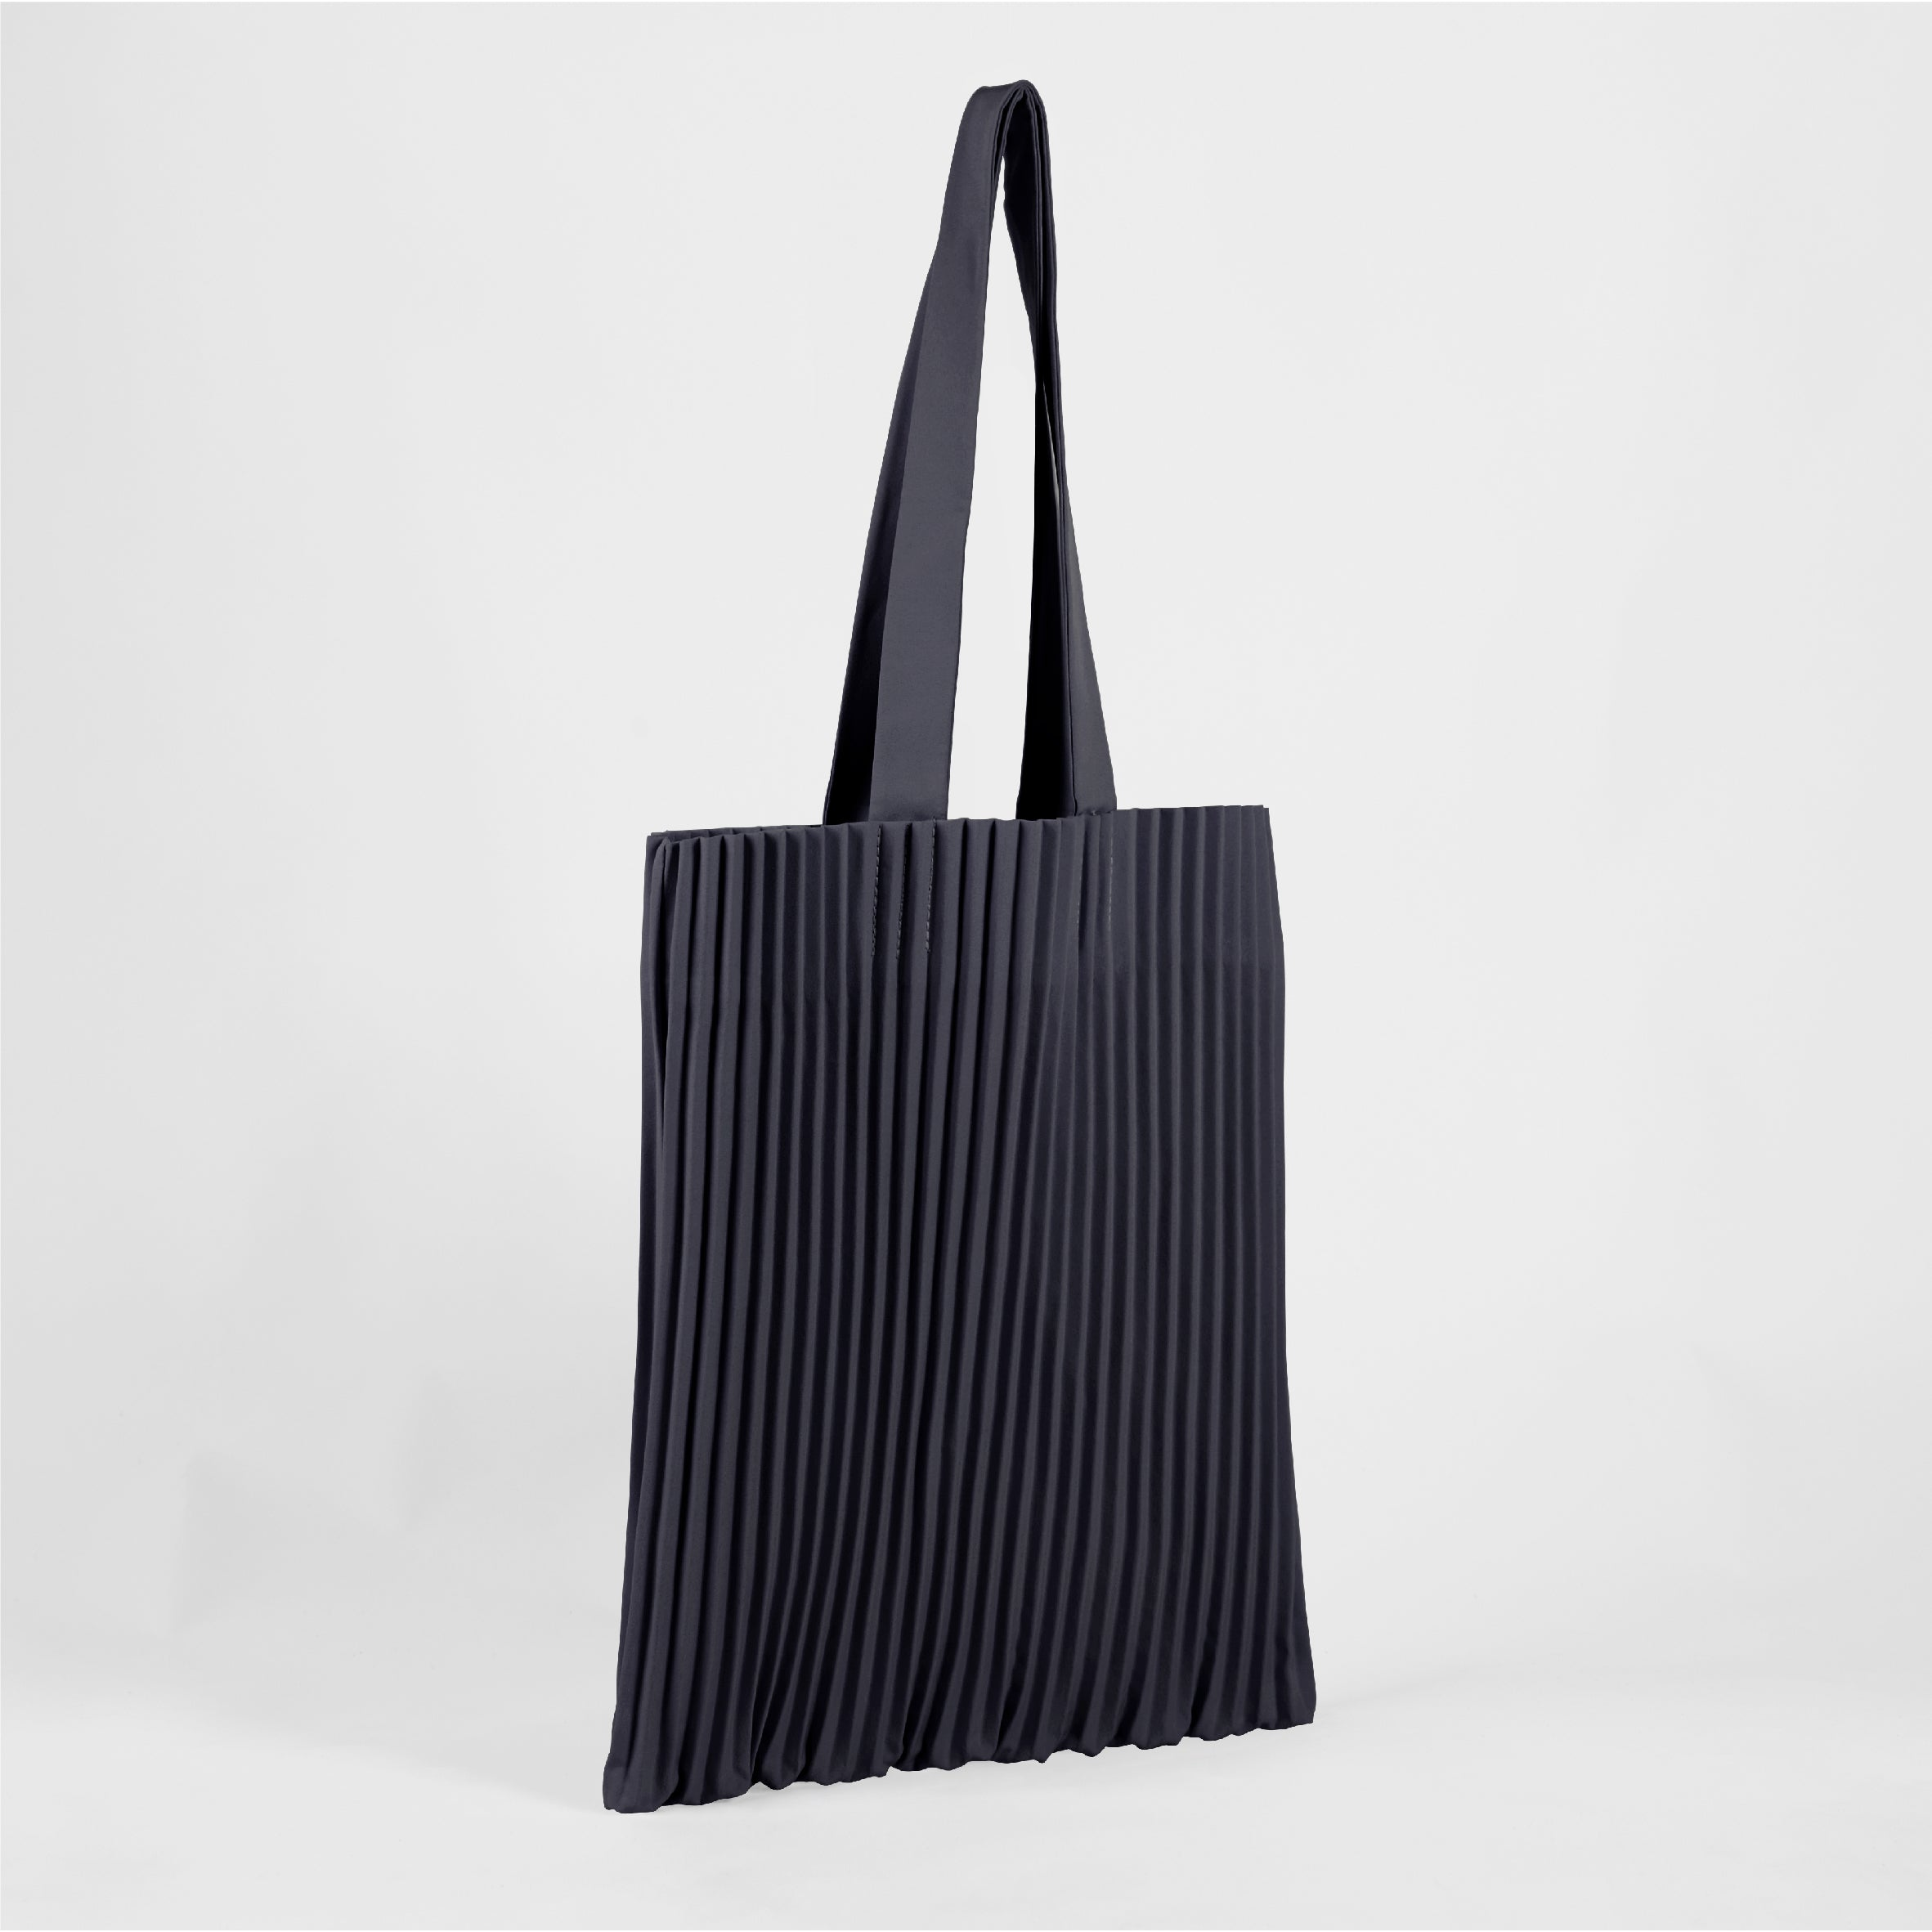 aPulp | Tote bag in Dark Grey